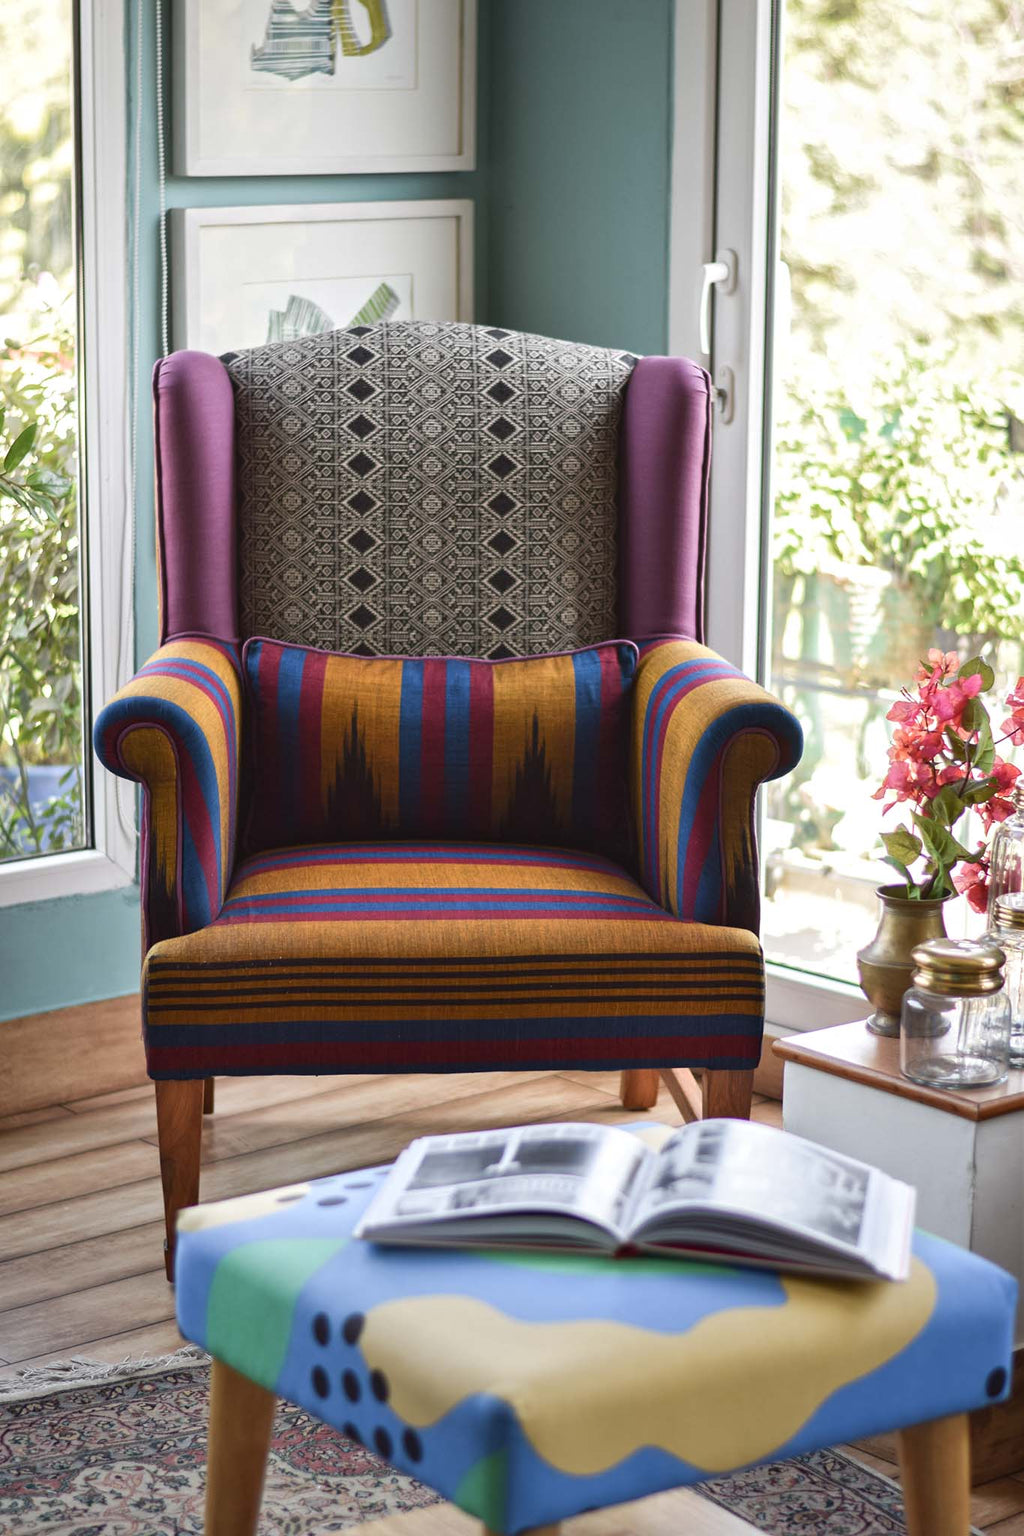 The Daisy Wingback | Mustard Stripe/Eggplant Ikat Sari edition